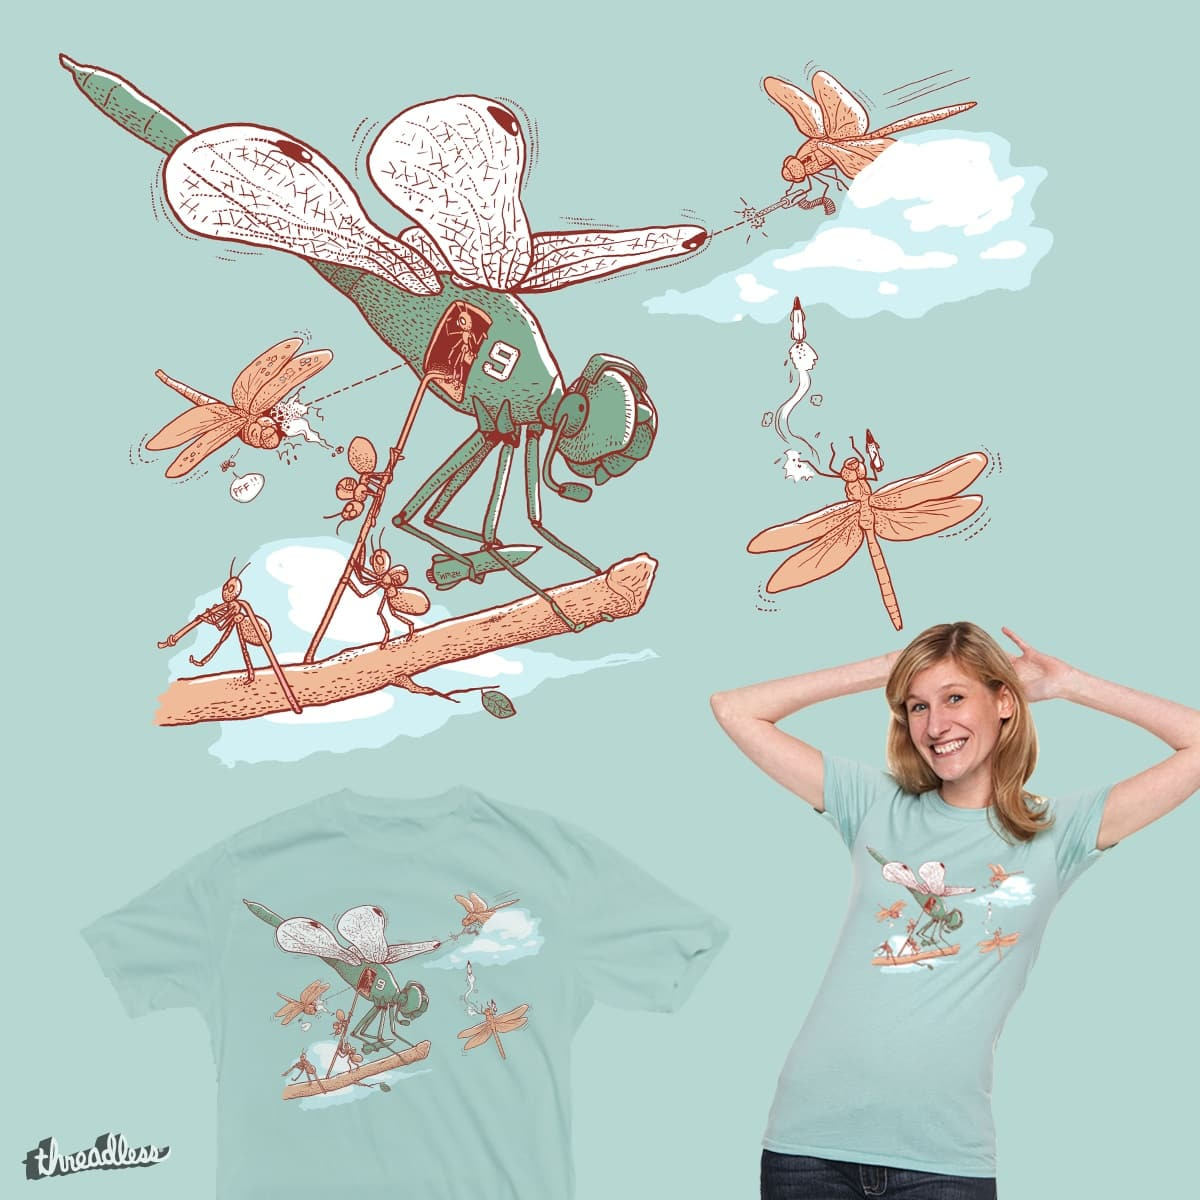 dragoncopter by bellamyc on Threadless